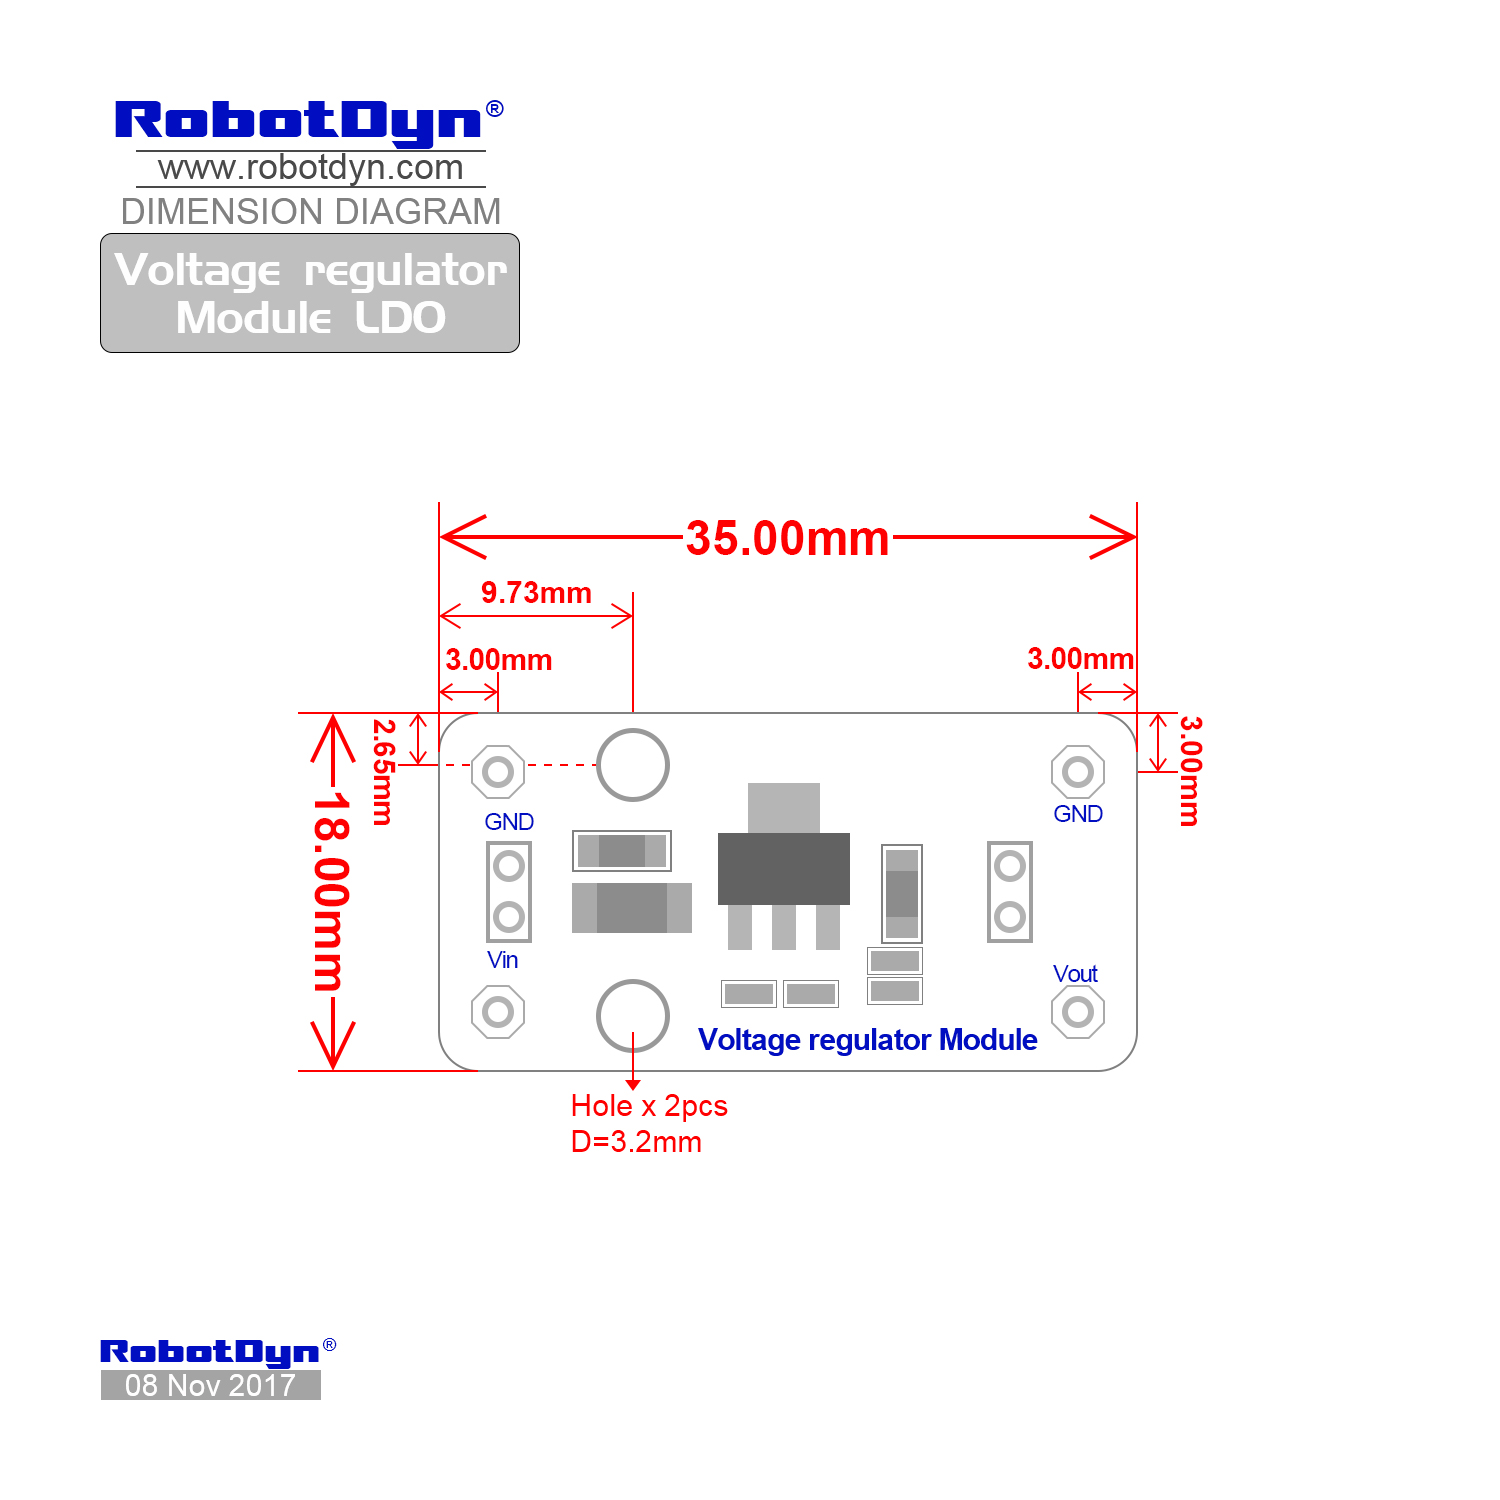 Voltage Regulator Module Ldo Our Schematic Dimensional Drawing Dimensions